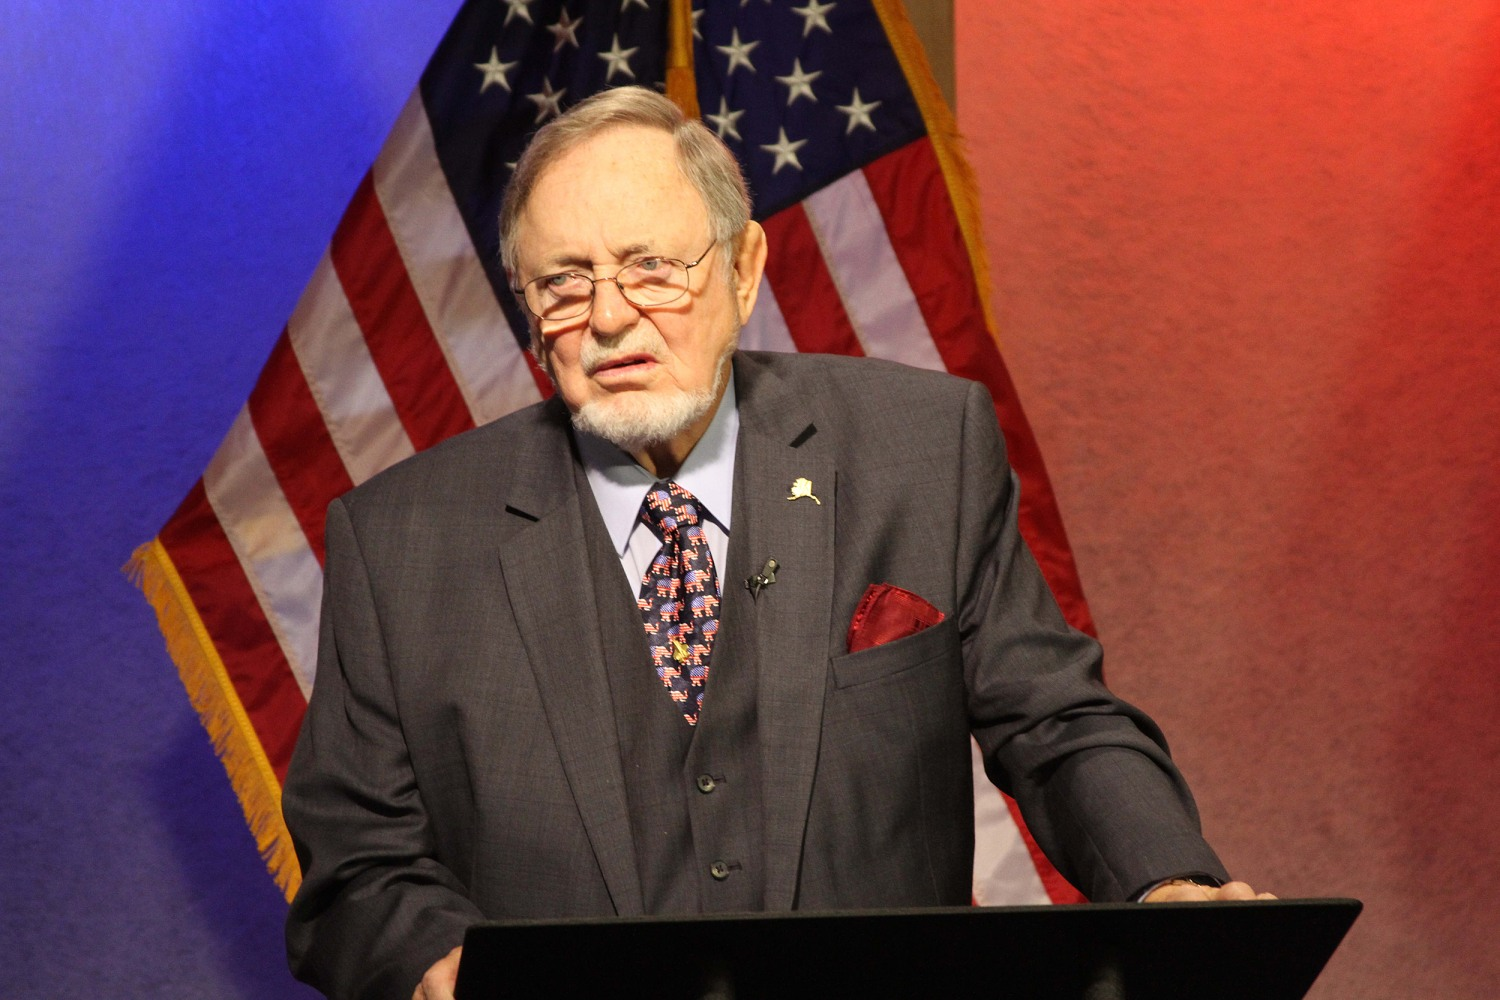 Alaska Rep. Don Young Suggests Jews With Guns Could Have